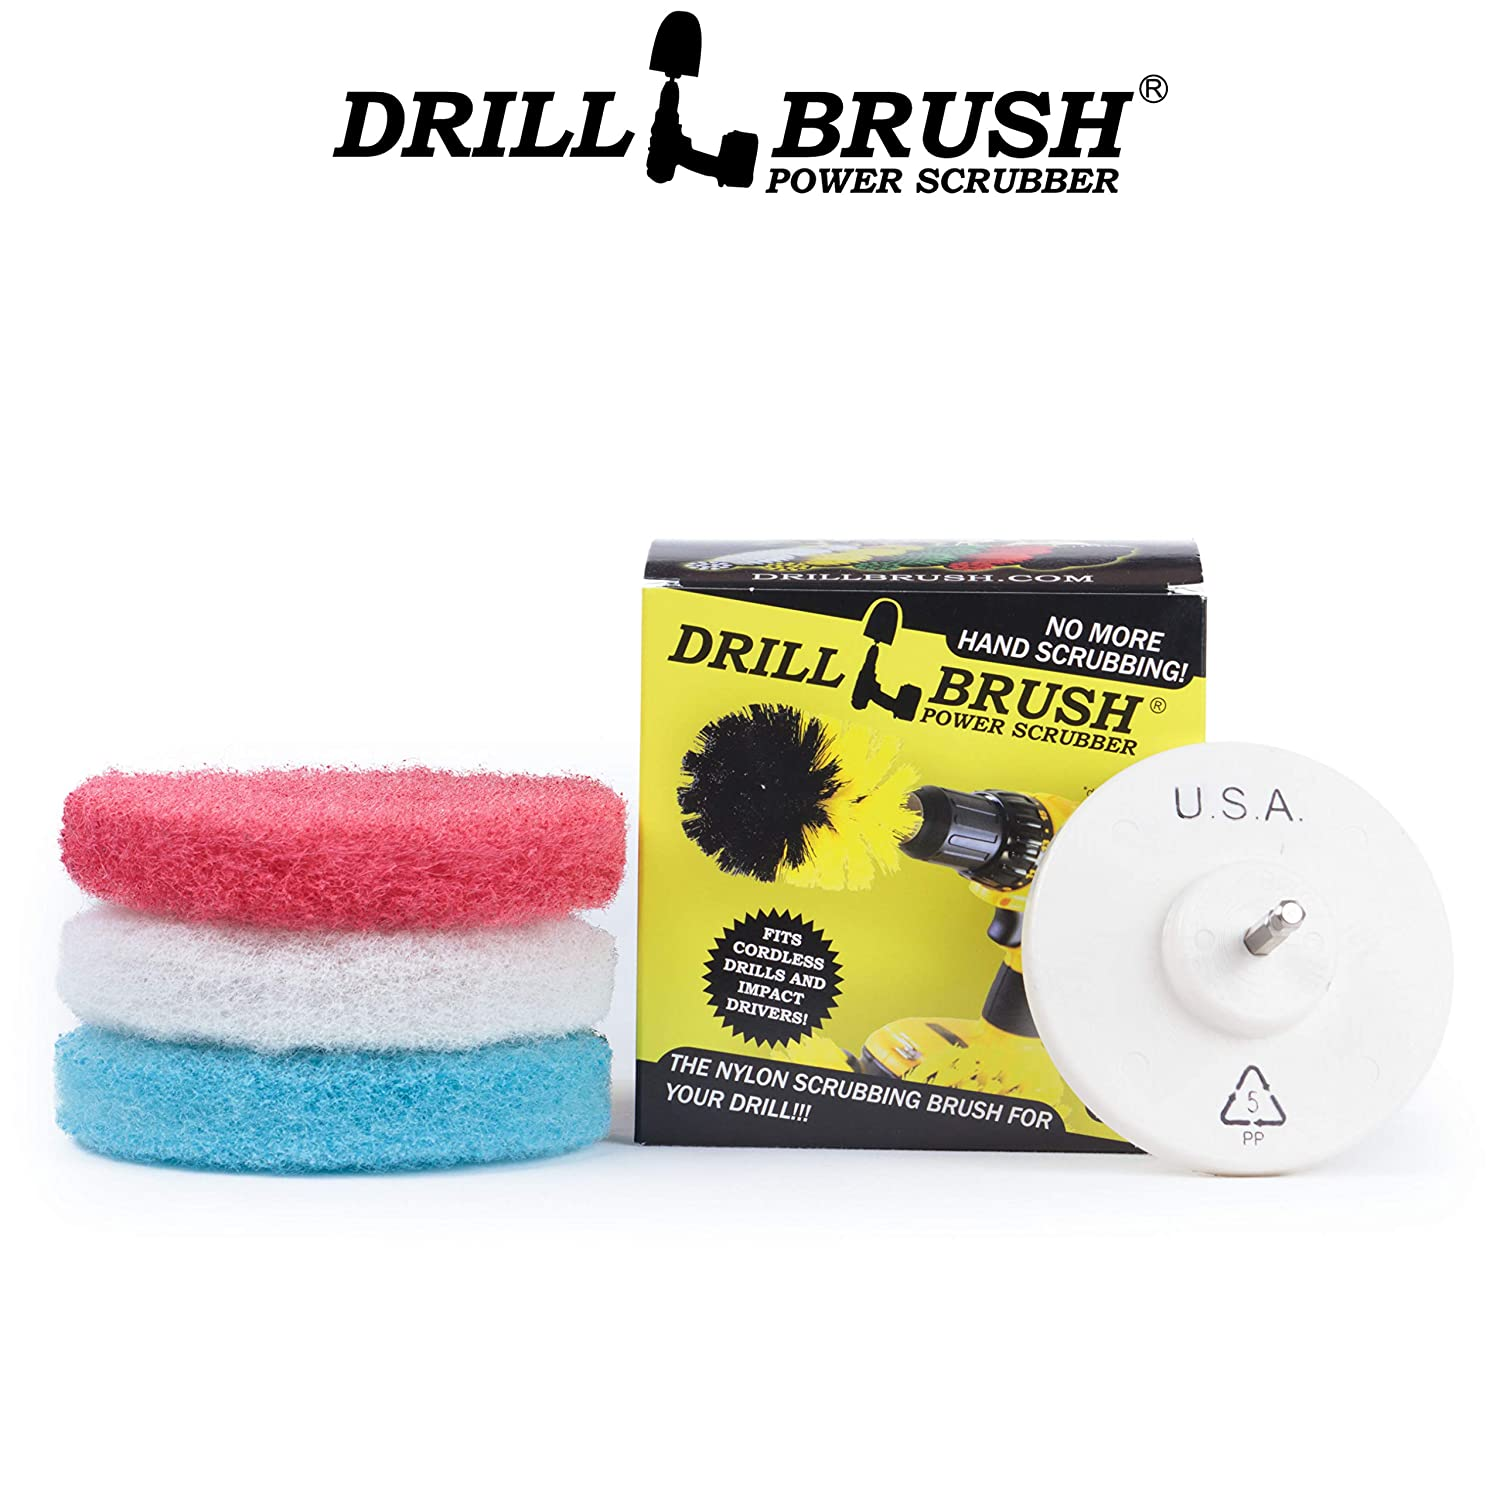 Amazon.com: Bathroom Cleaning Power Scrubber Scouring Pad Kit: Health & Personal Care